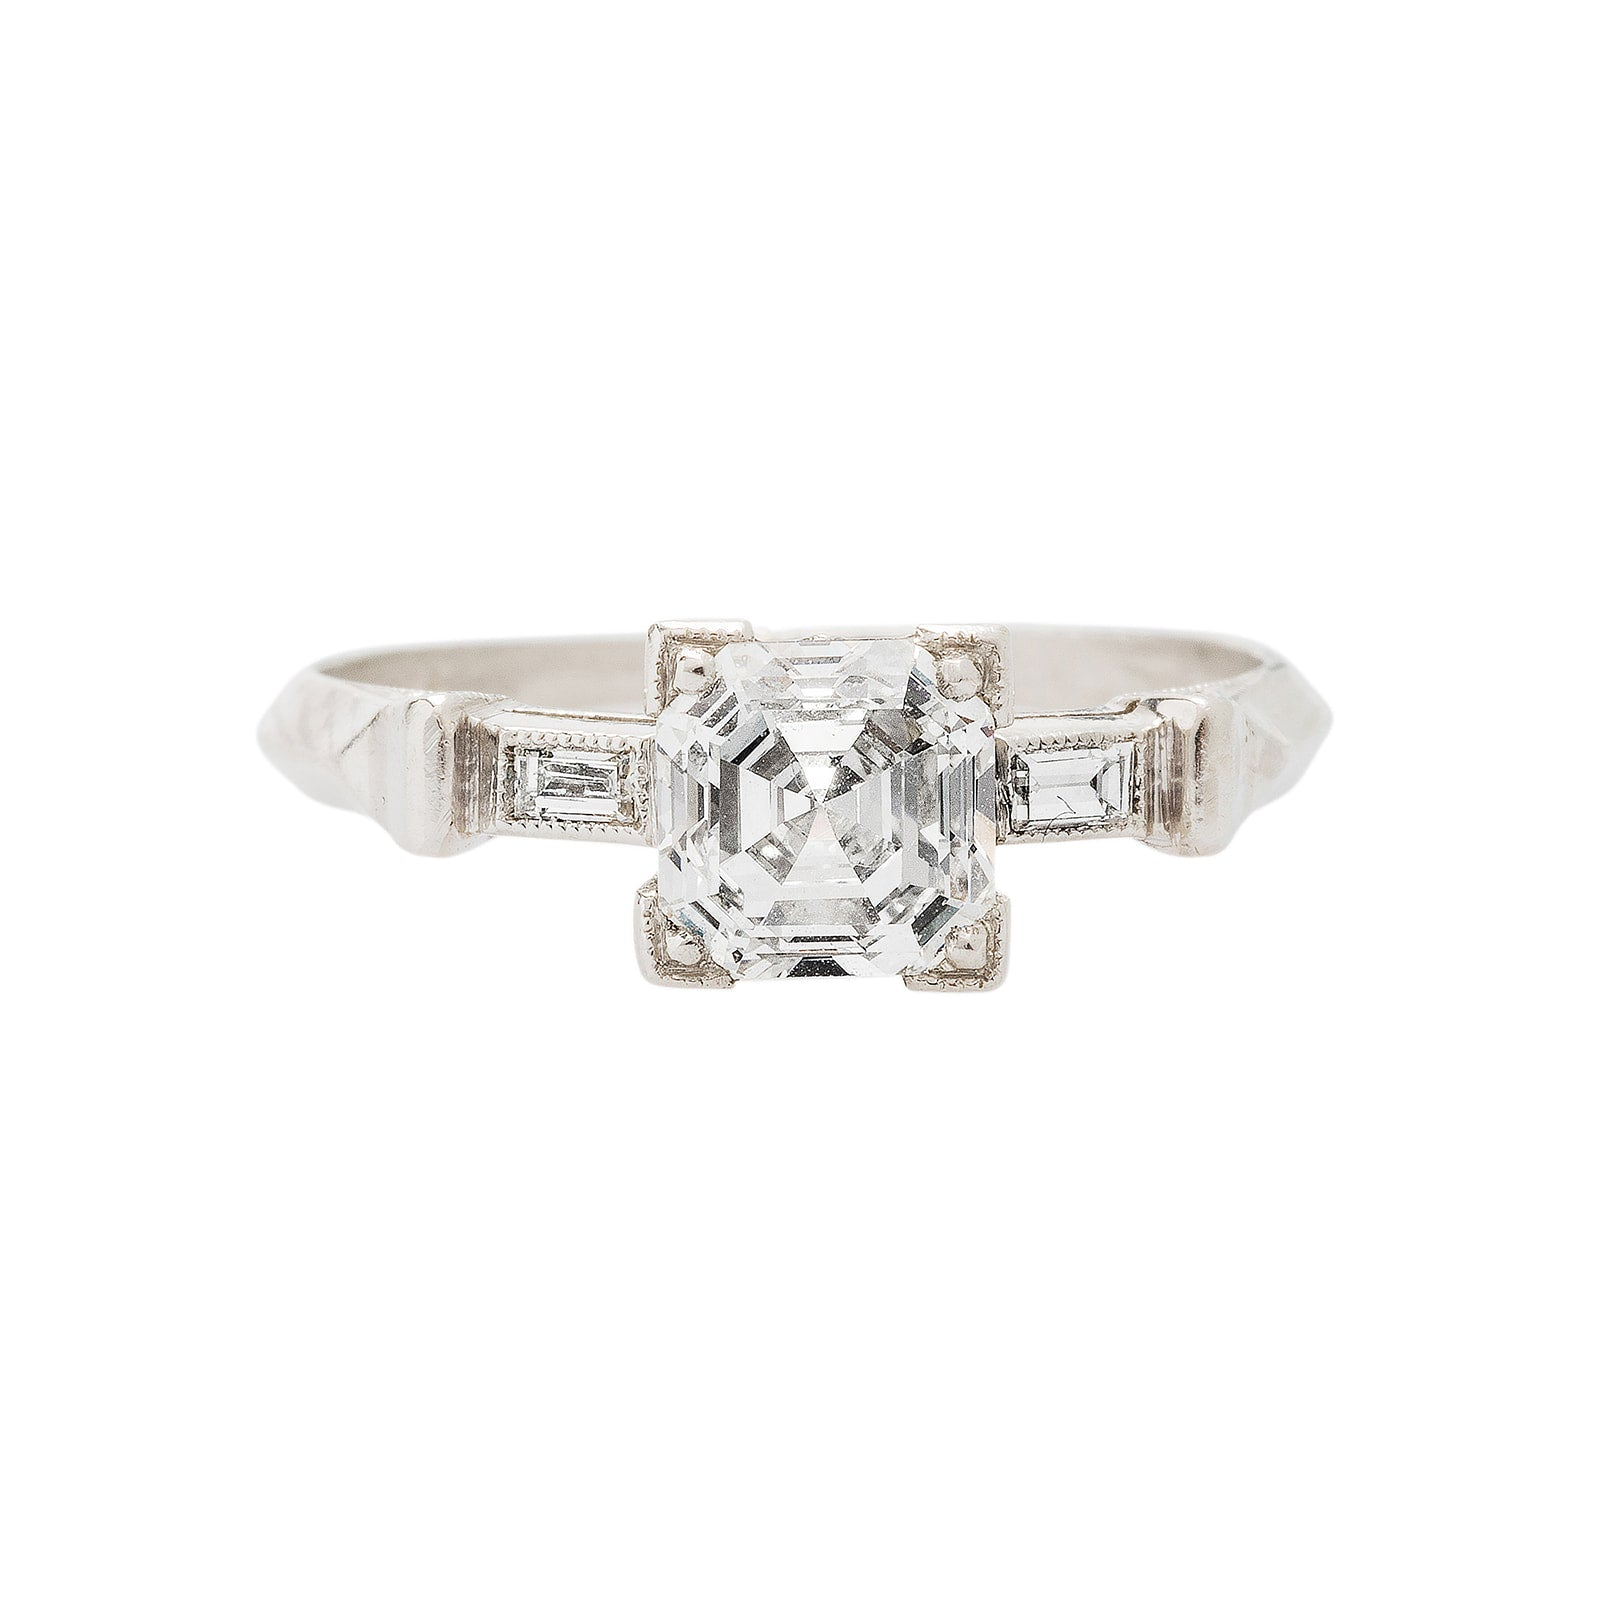 A Gorgeous and Authentic Art Deco Platinum and Asscher Cut Diamond Ring